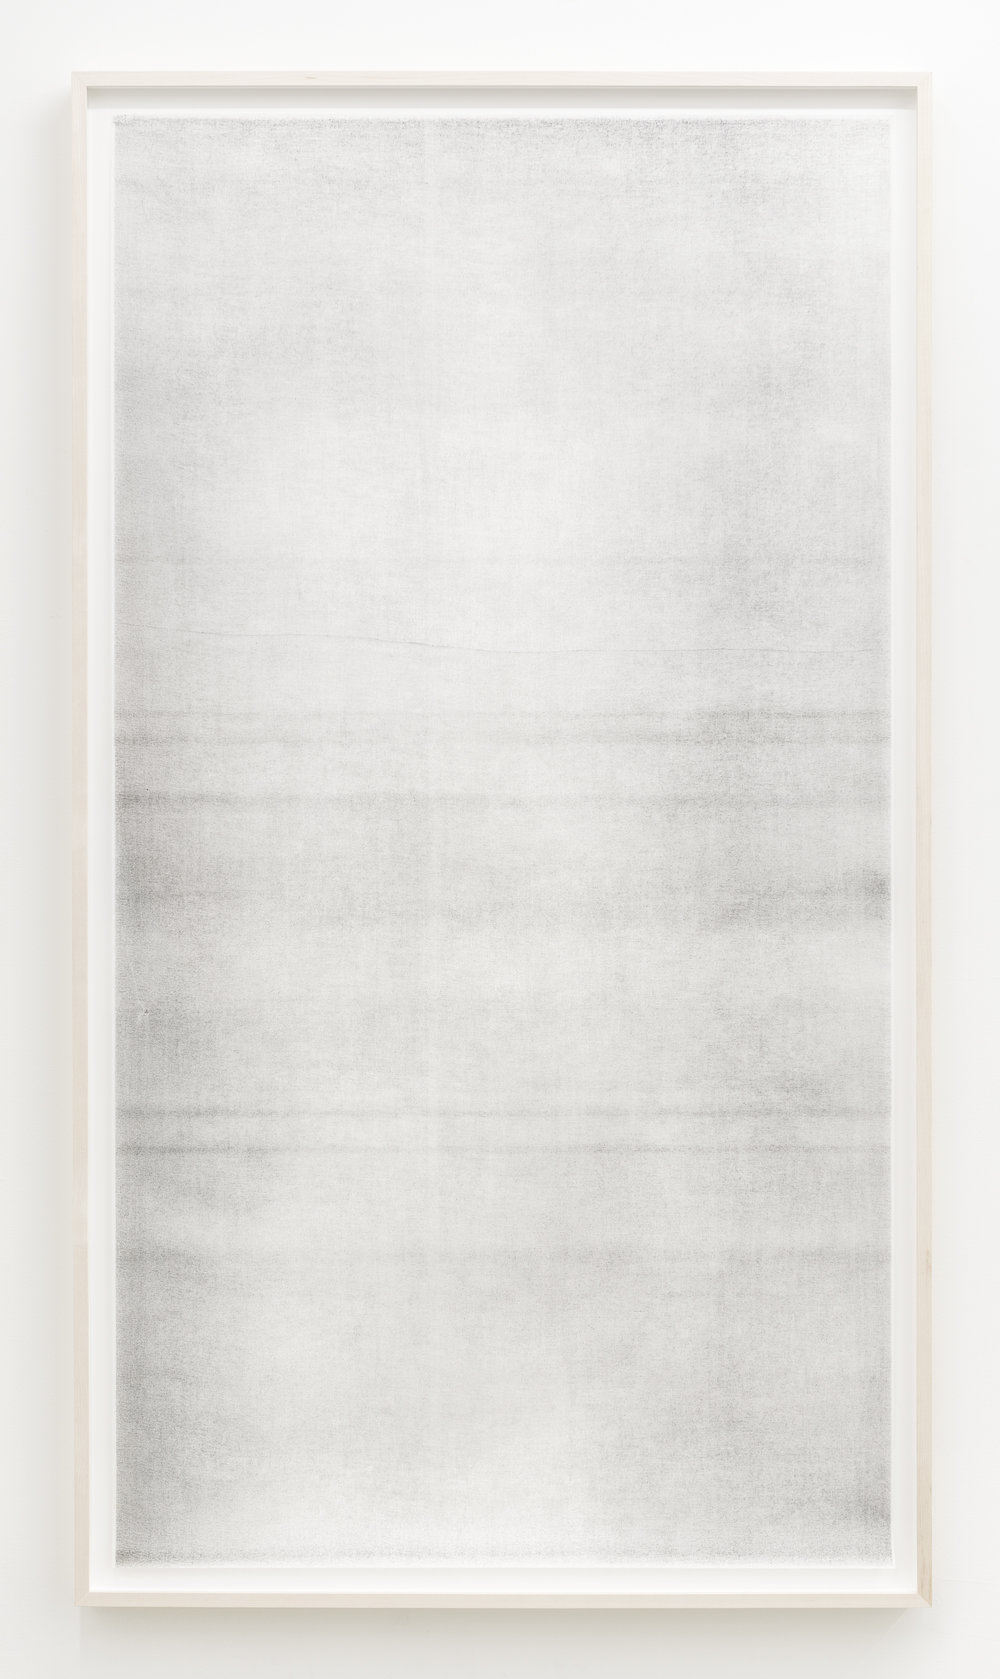 "Sans titre (when it settles #3 from the series A Certain Silence), 2017, huile, graphite et fusain sur tarlatan, 150 X 89 cm (59 X 35"")"